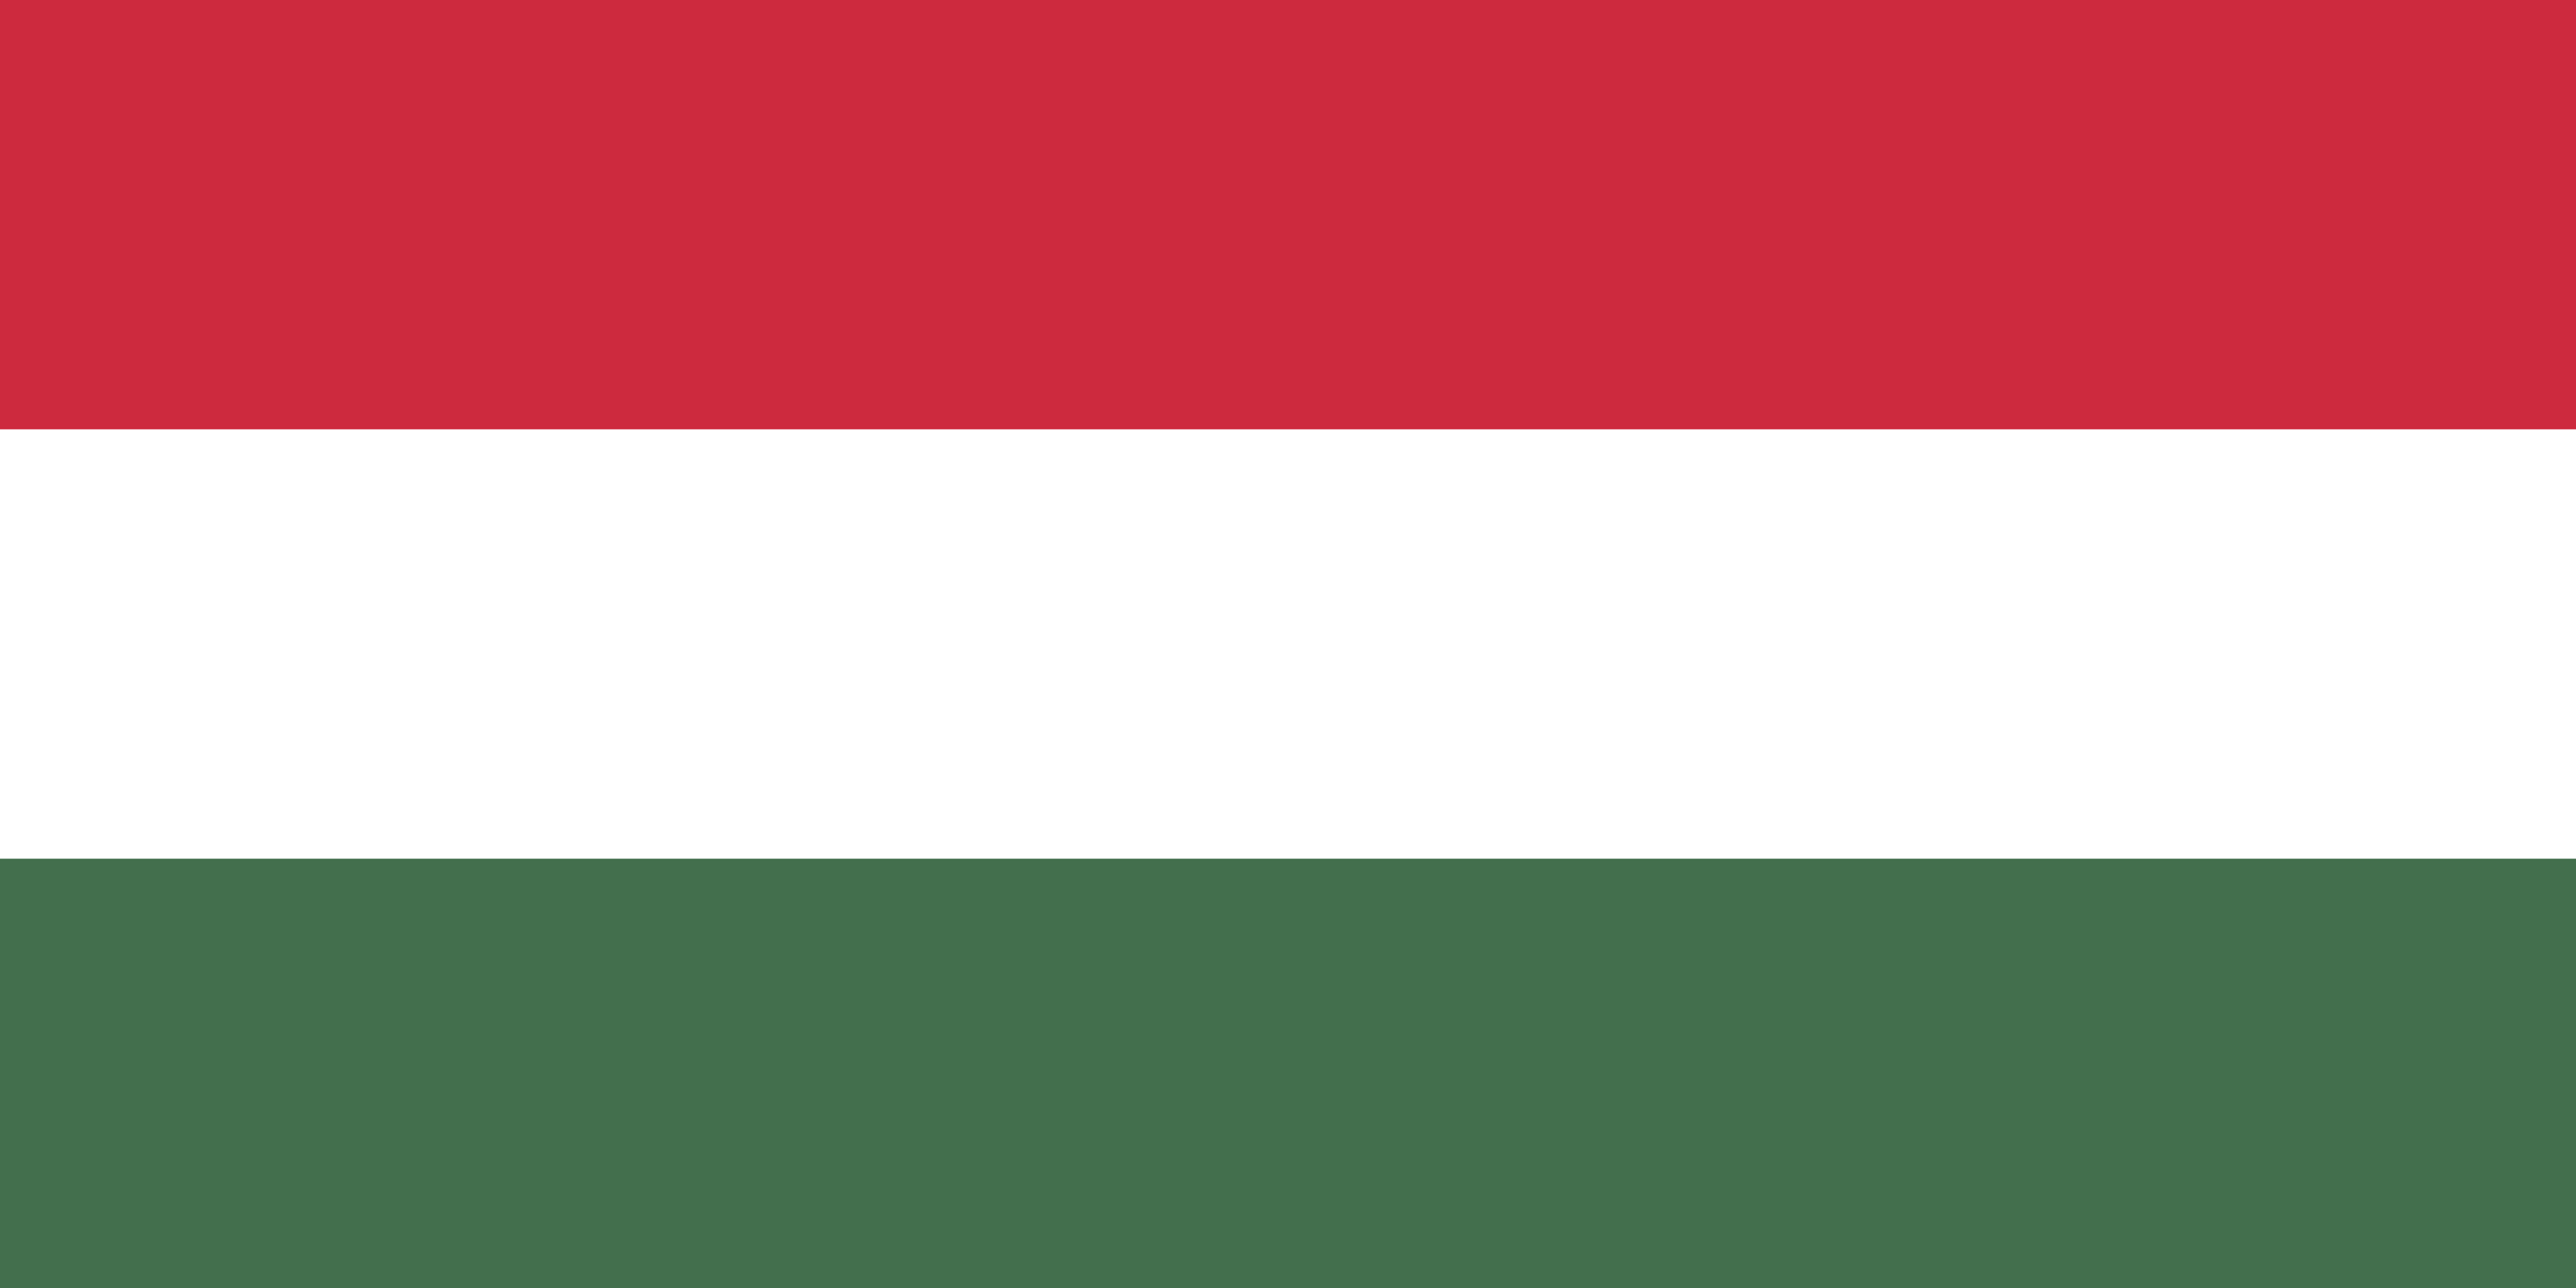 Hungary